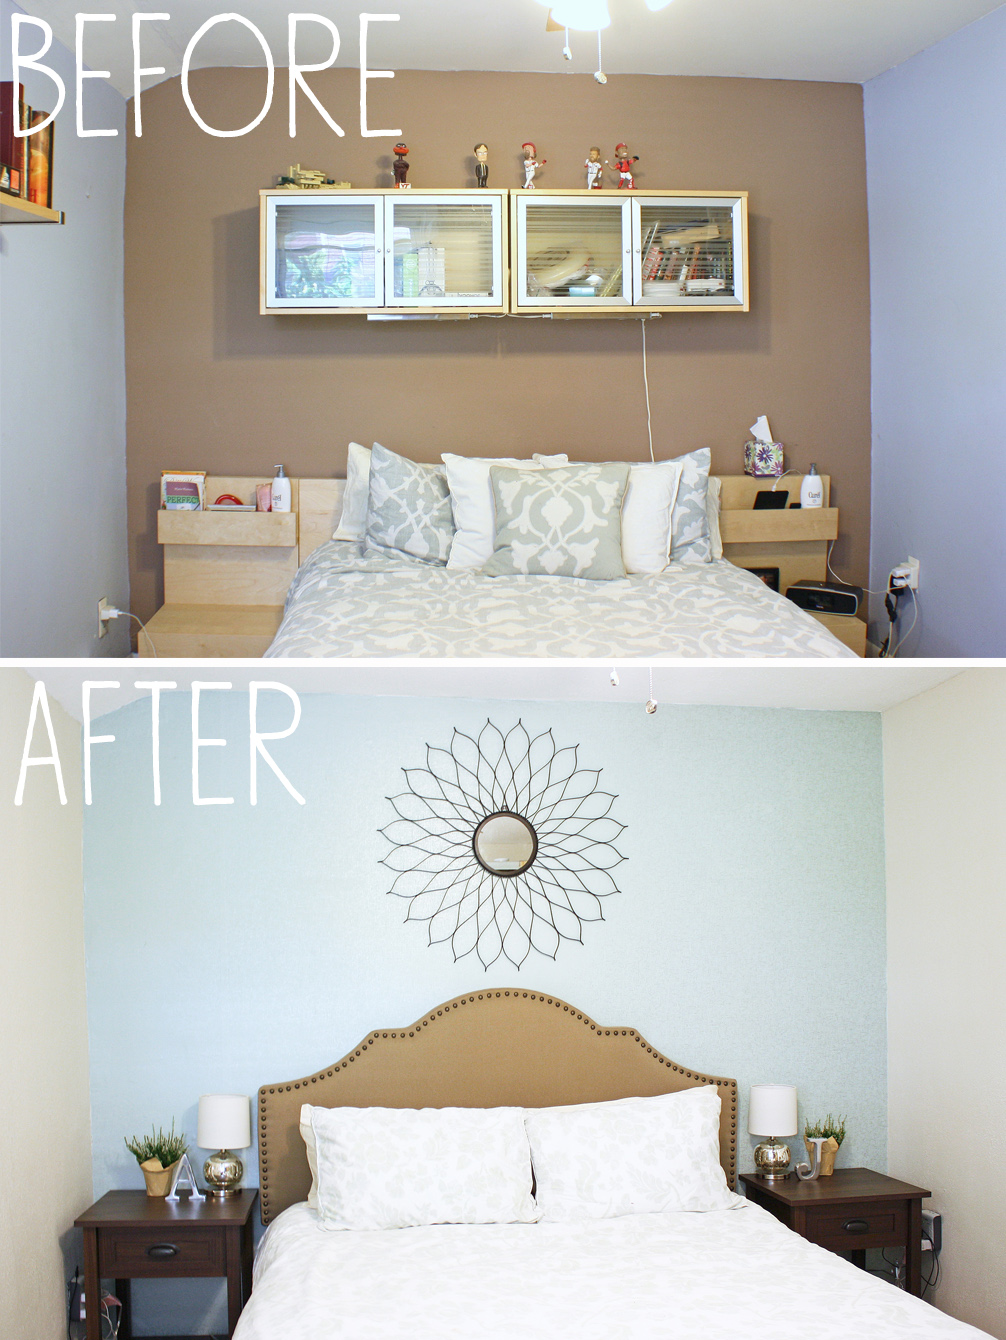 Hanging Wallpaper Before and After